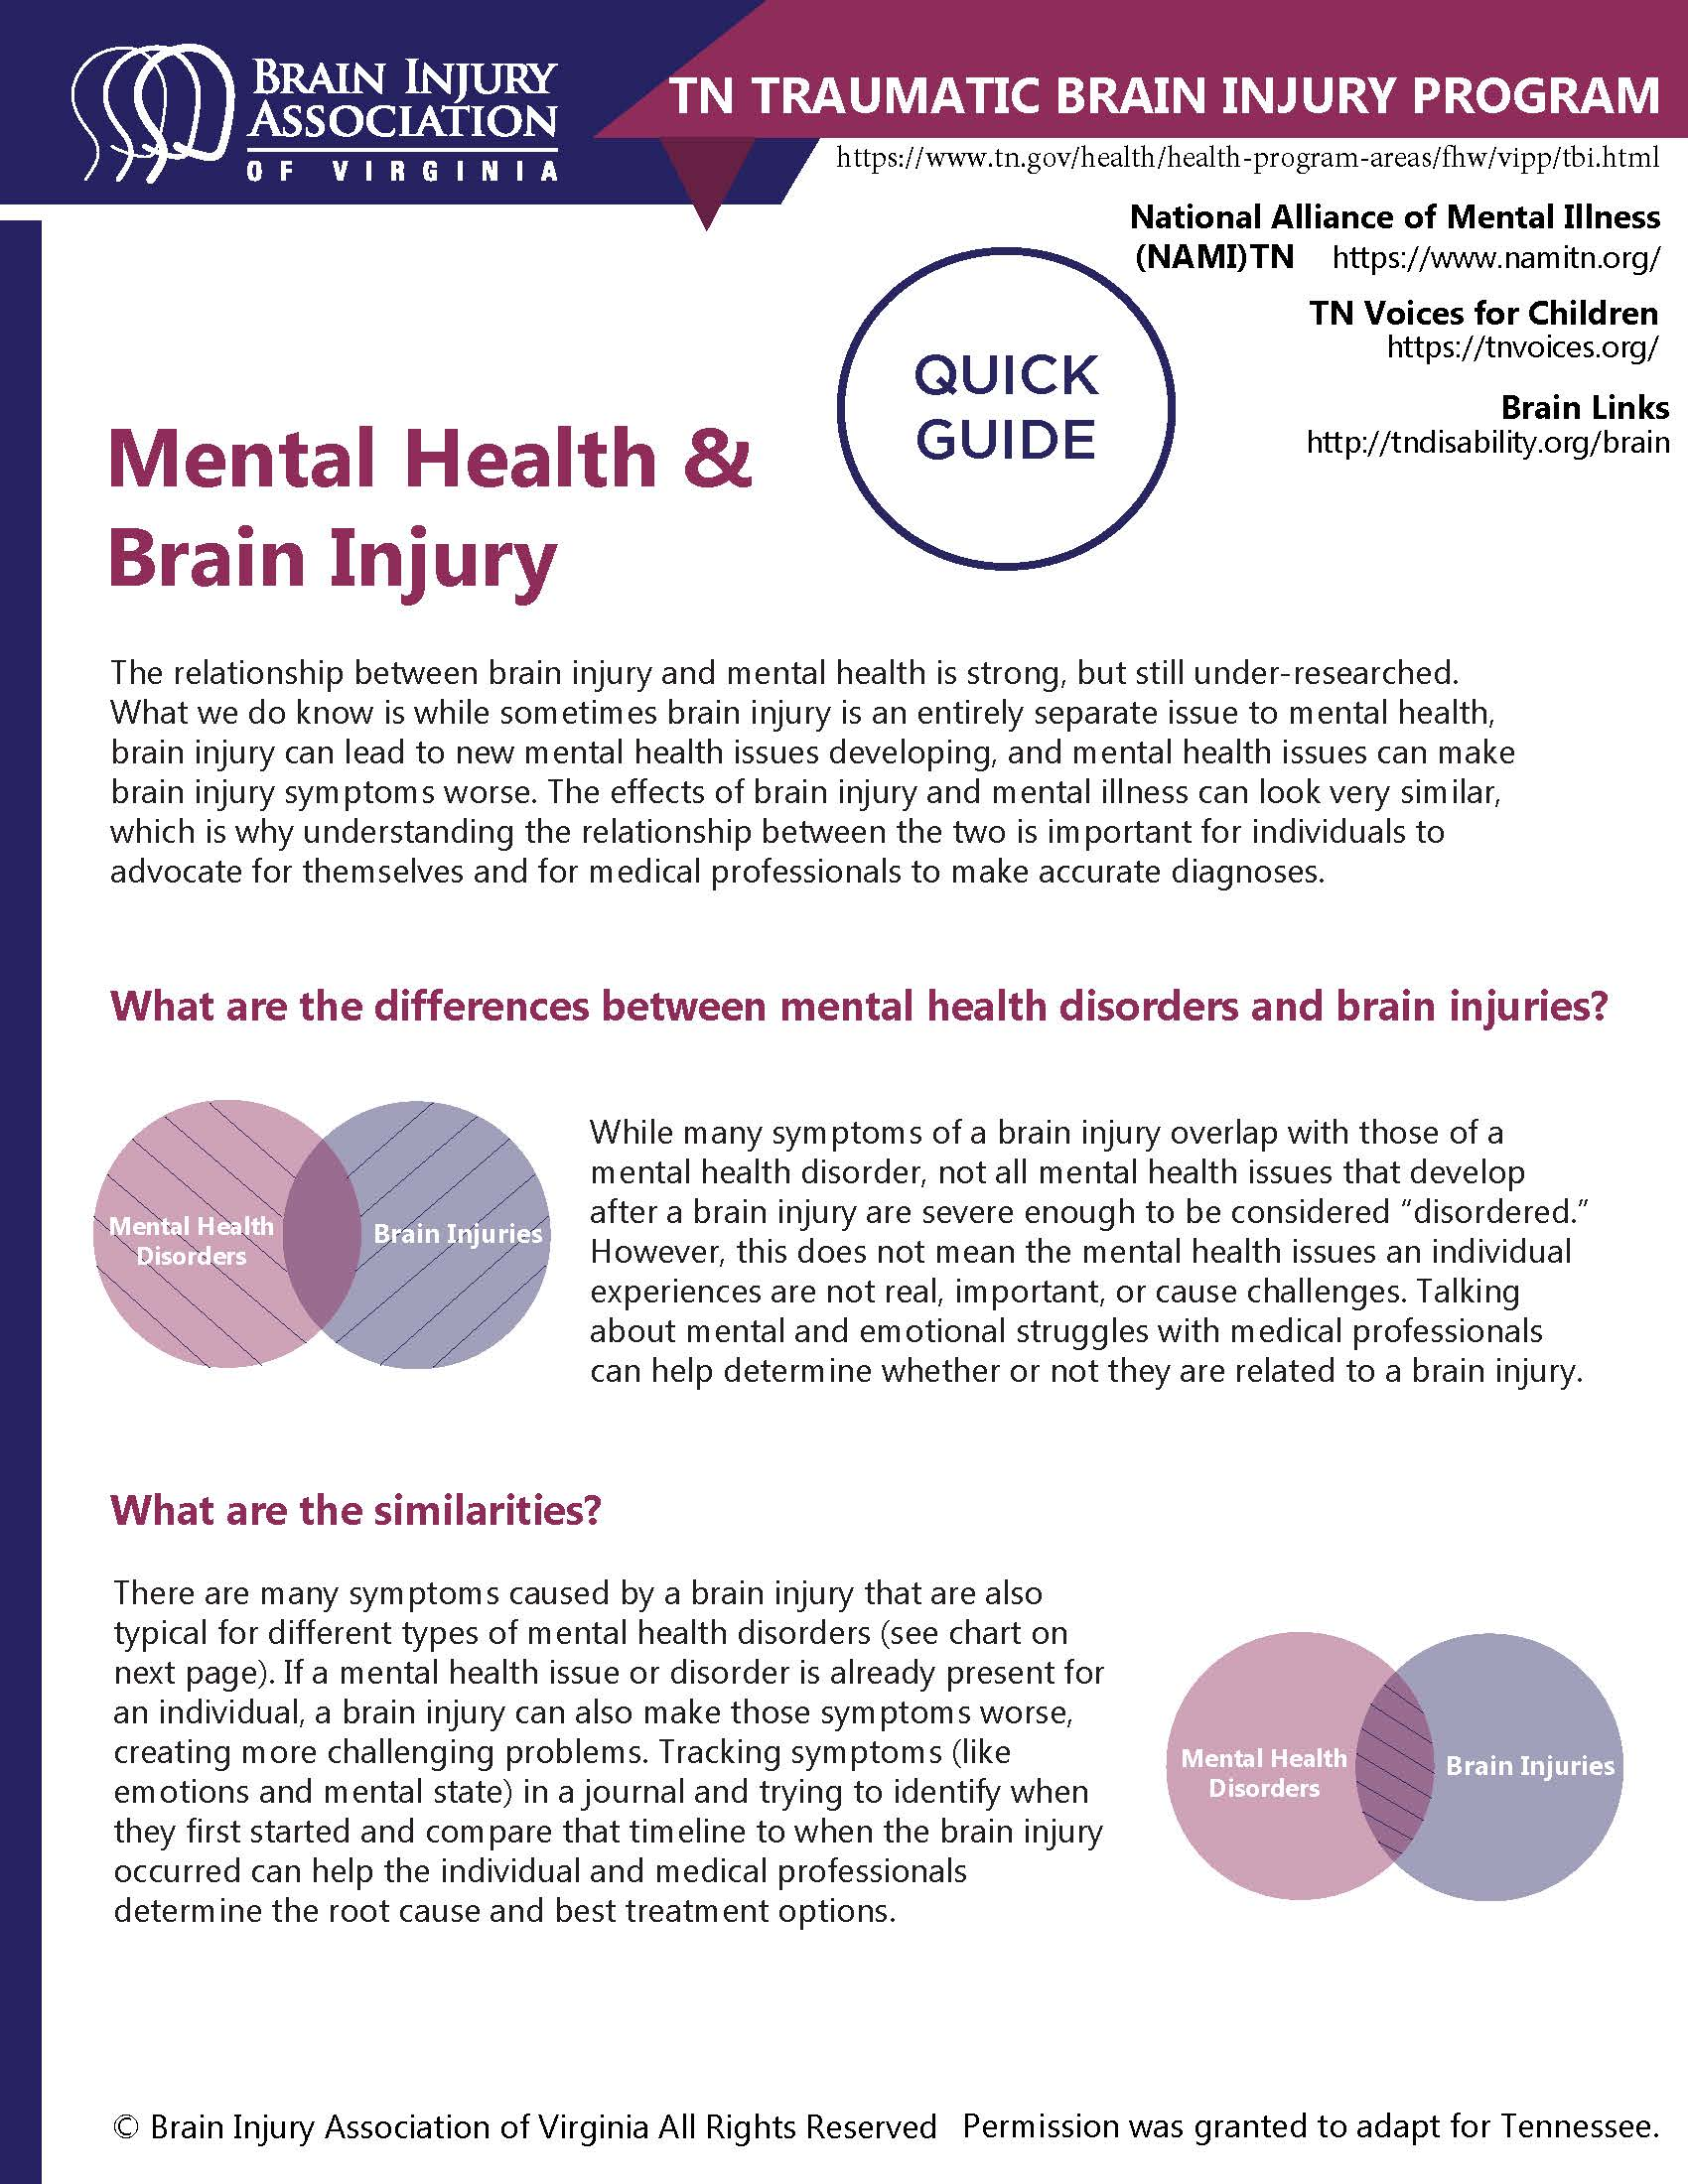 Mental Health and Brain Injury Quick Guide